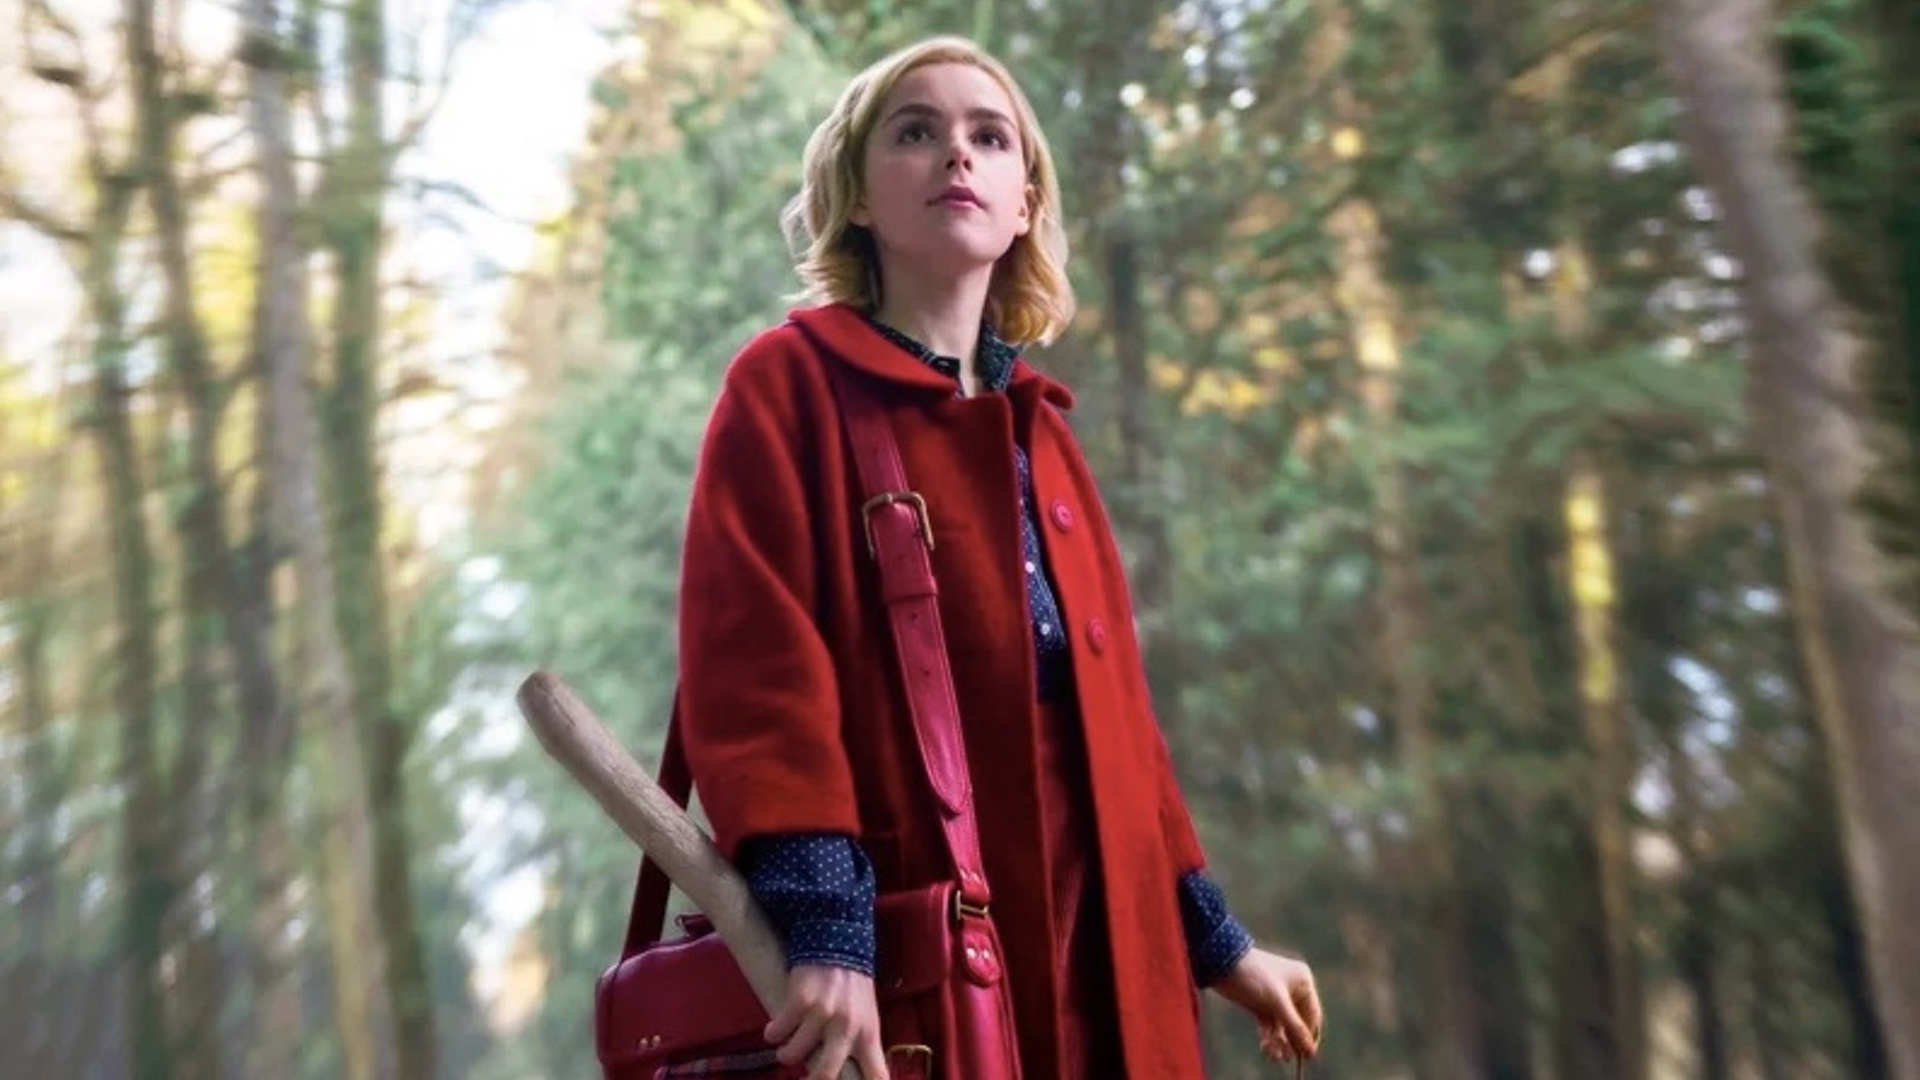 new-images-released-for-netflixs-the-chilling-adventures-of-sabrina-social.jpg